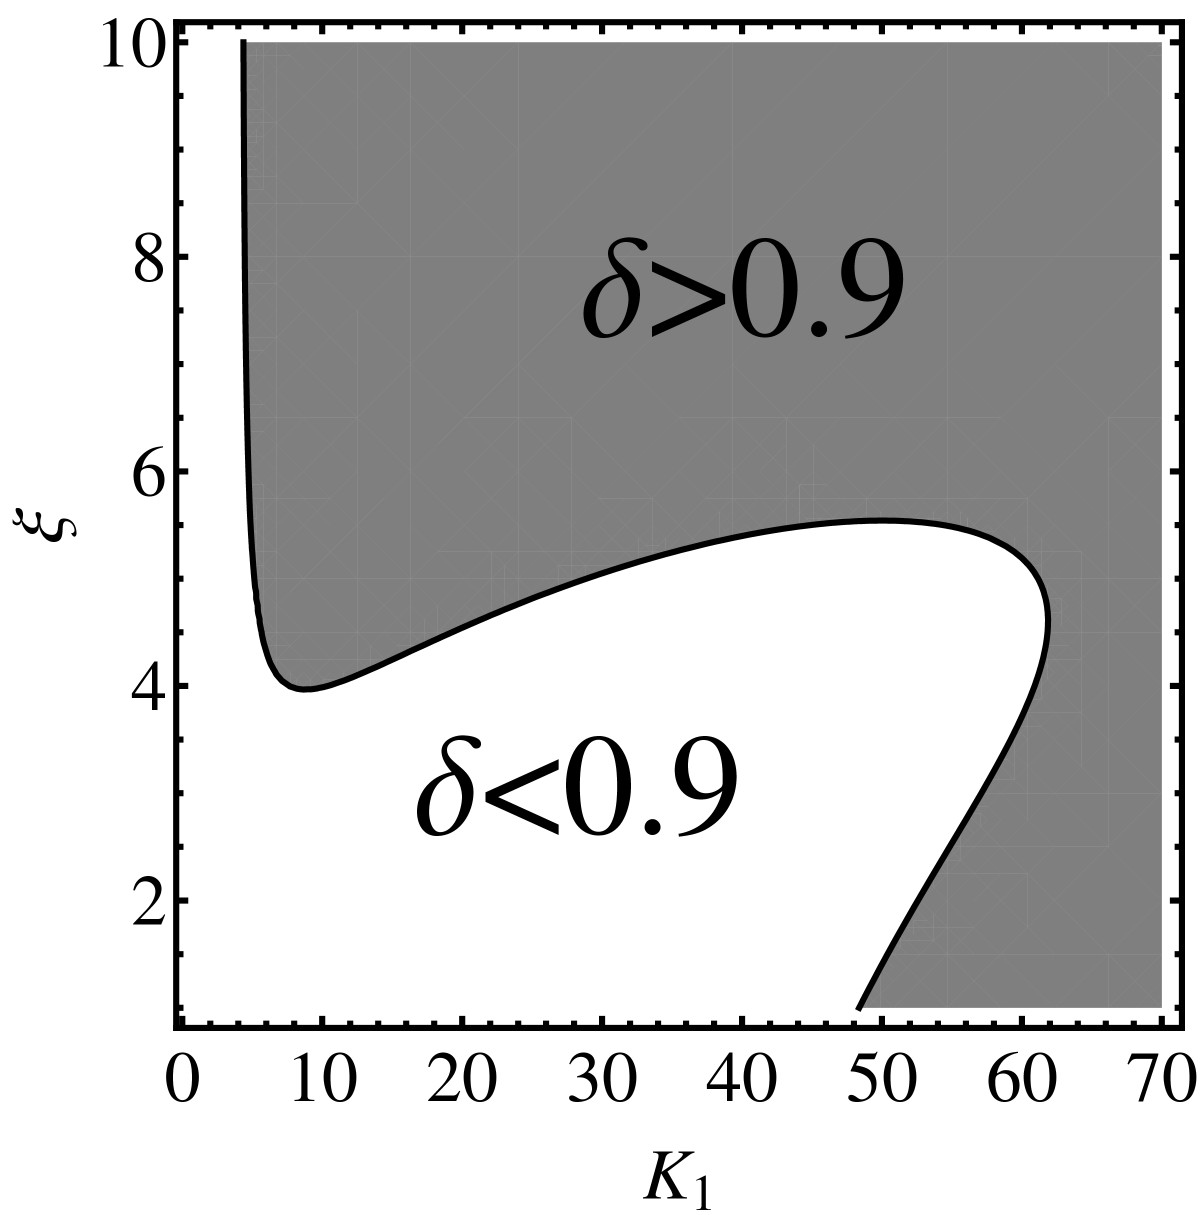 http://static-content.springer.com/image/art%3A10.1186%2F1742-4682-8-10/MediaObjects/12976_2011_Article_285_Fig6_HTML.jpg